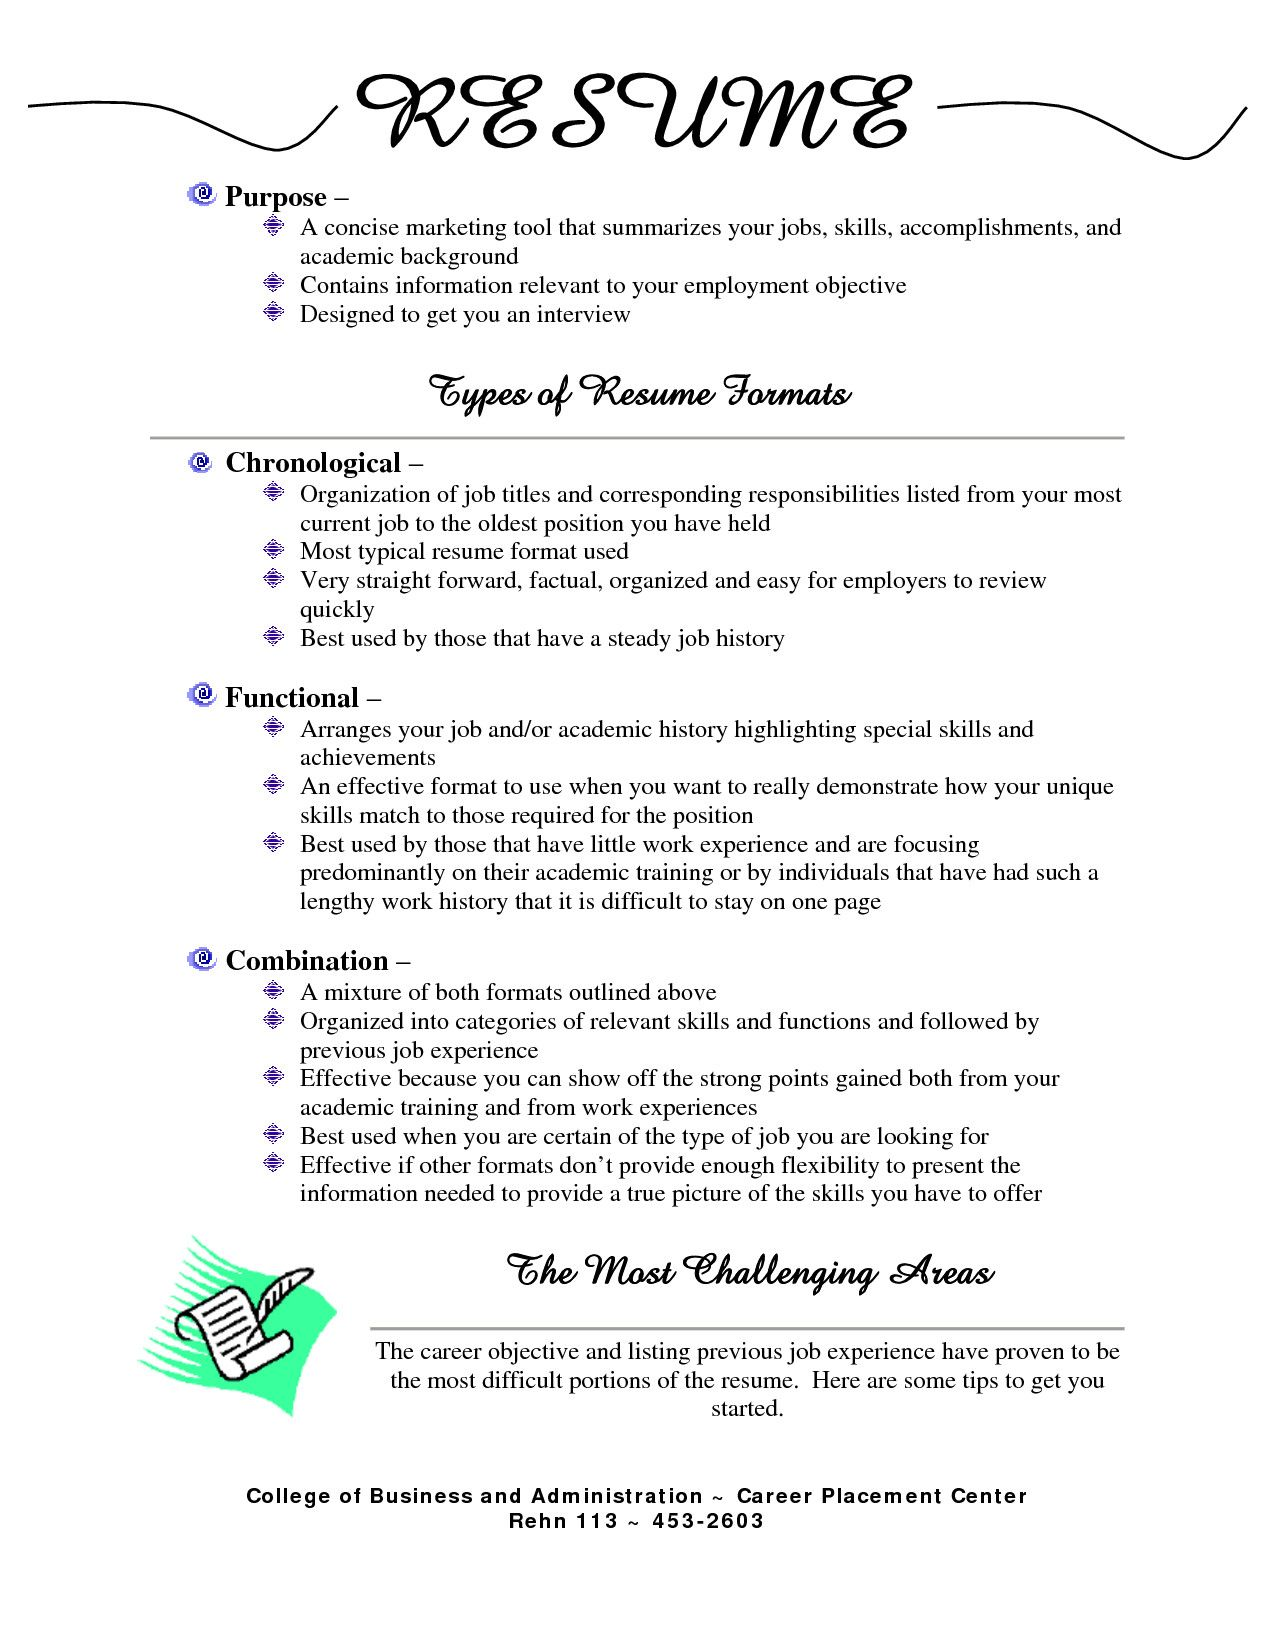 different types of resumes stylish for jobs resume ideas ex format examples job all Resume Resume For All Types Of Jobs